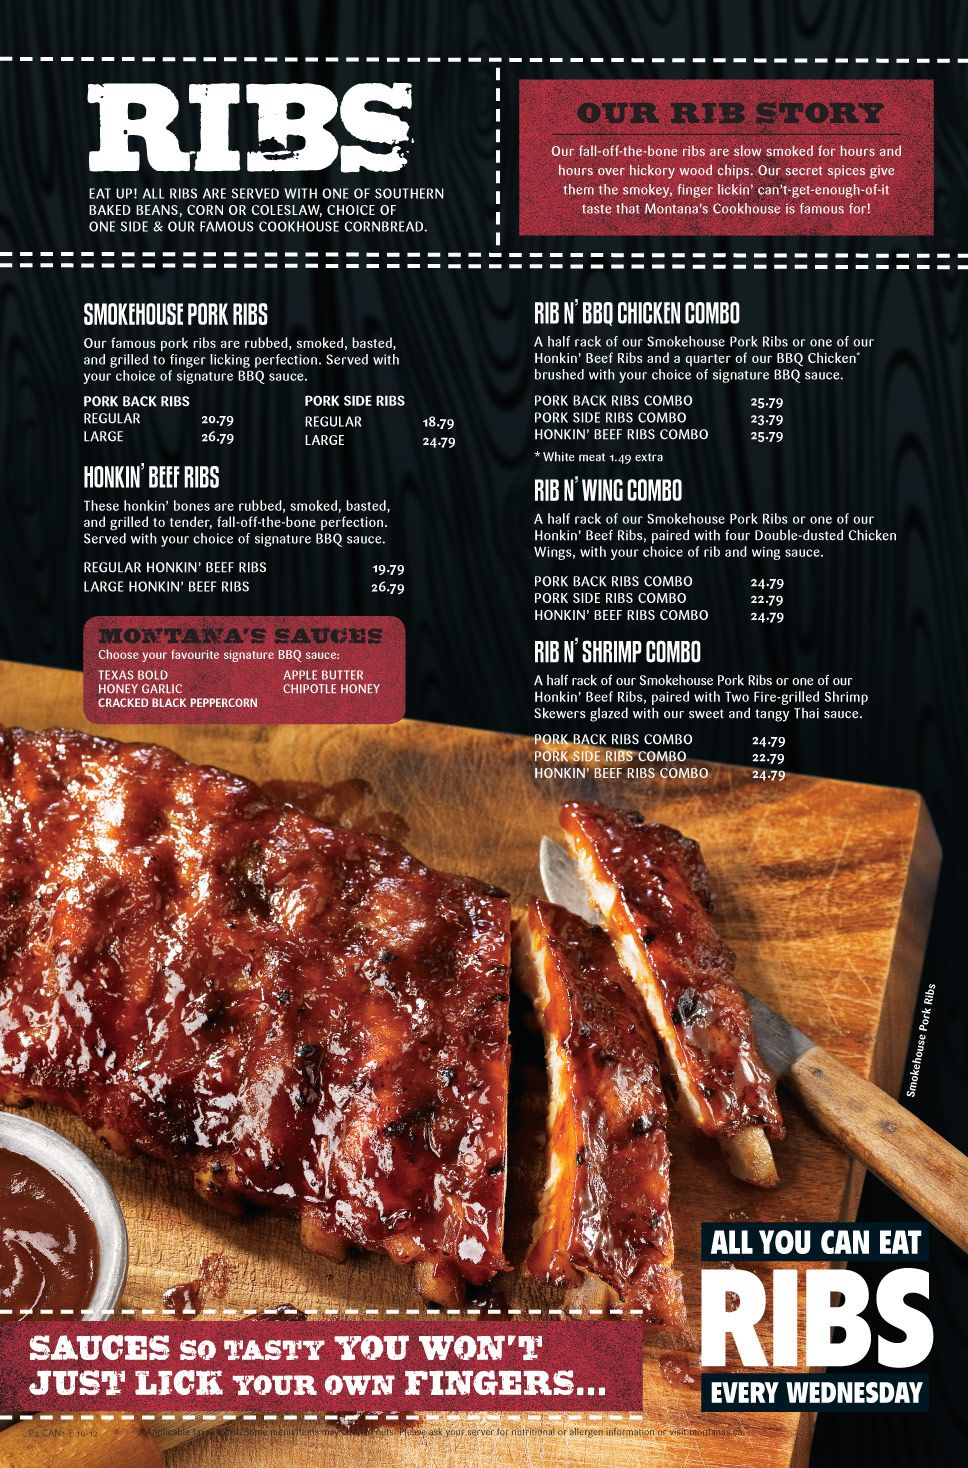 Montana Cookhouse Ribs C H E E R S Montana S Cookhouse C H E E R S Hello Folks You All Should Really Join My Family And Myself Pork Ribs Eat Baked Corn